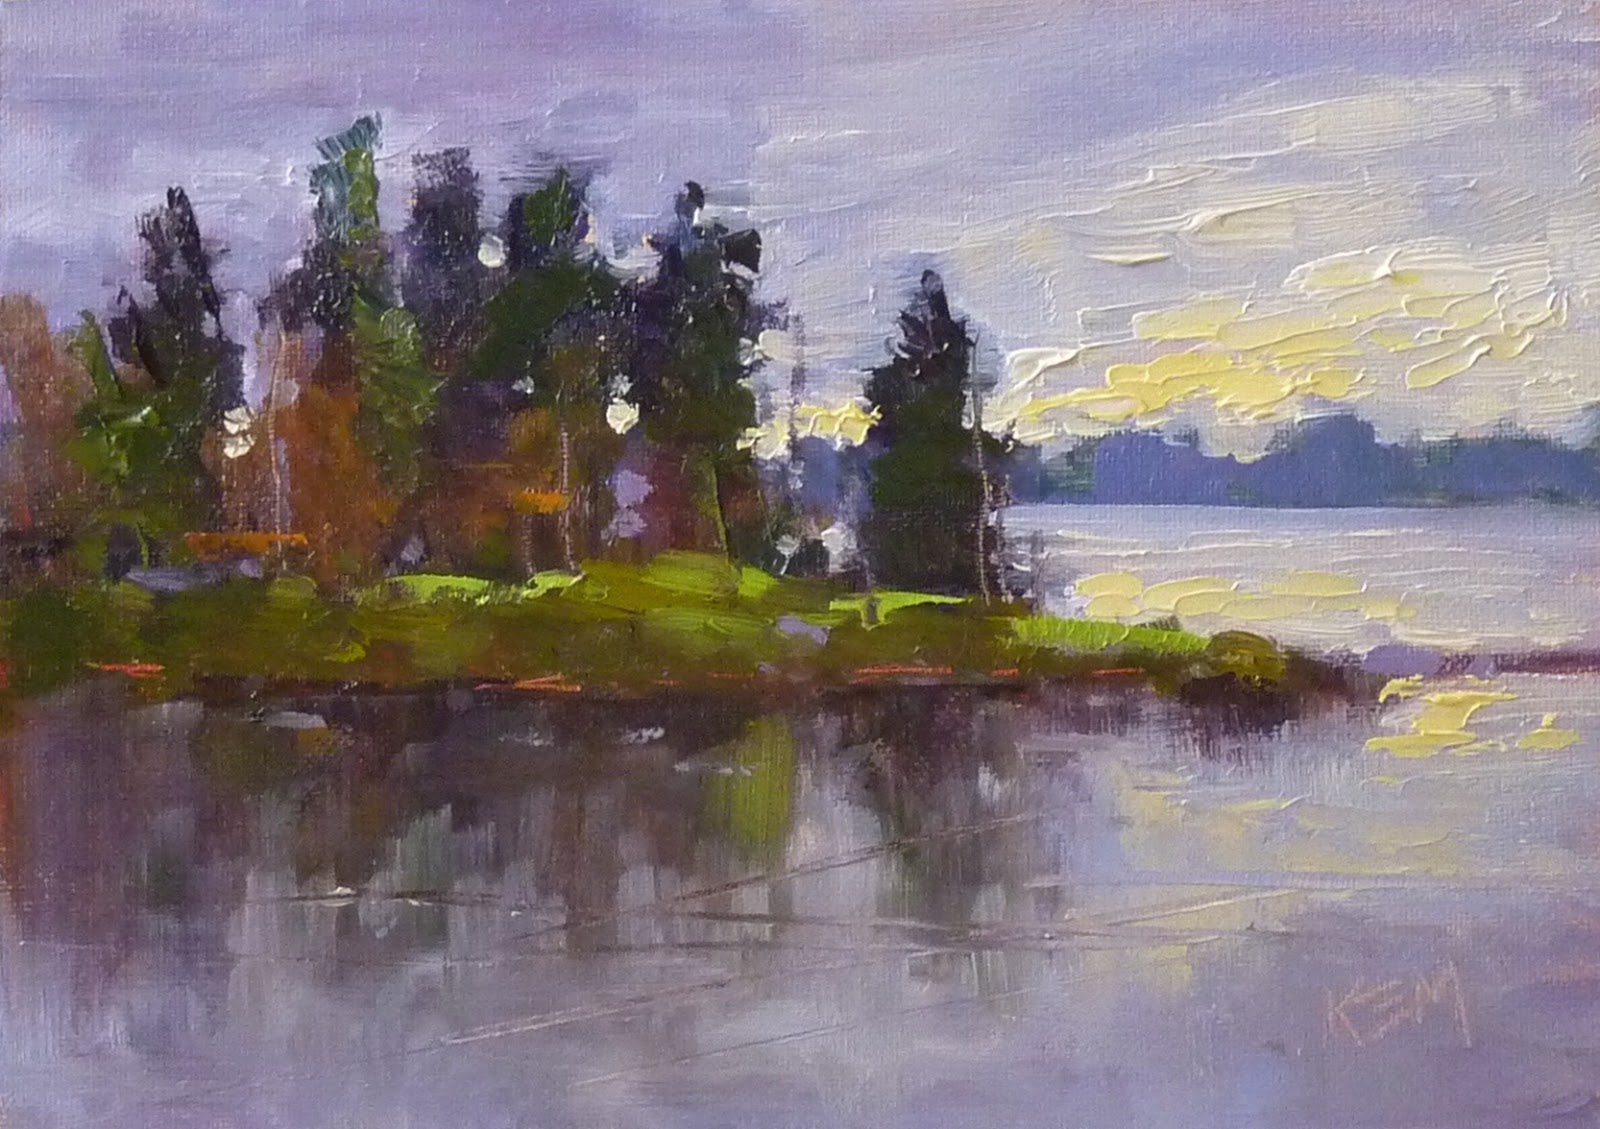 Painting Inspiration: Painting My World: Art Inspiration From Finland